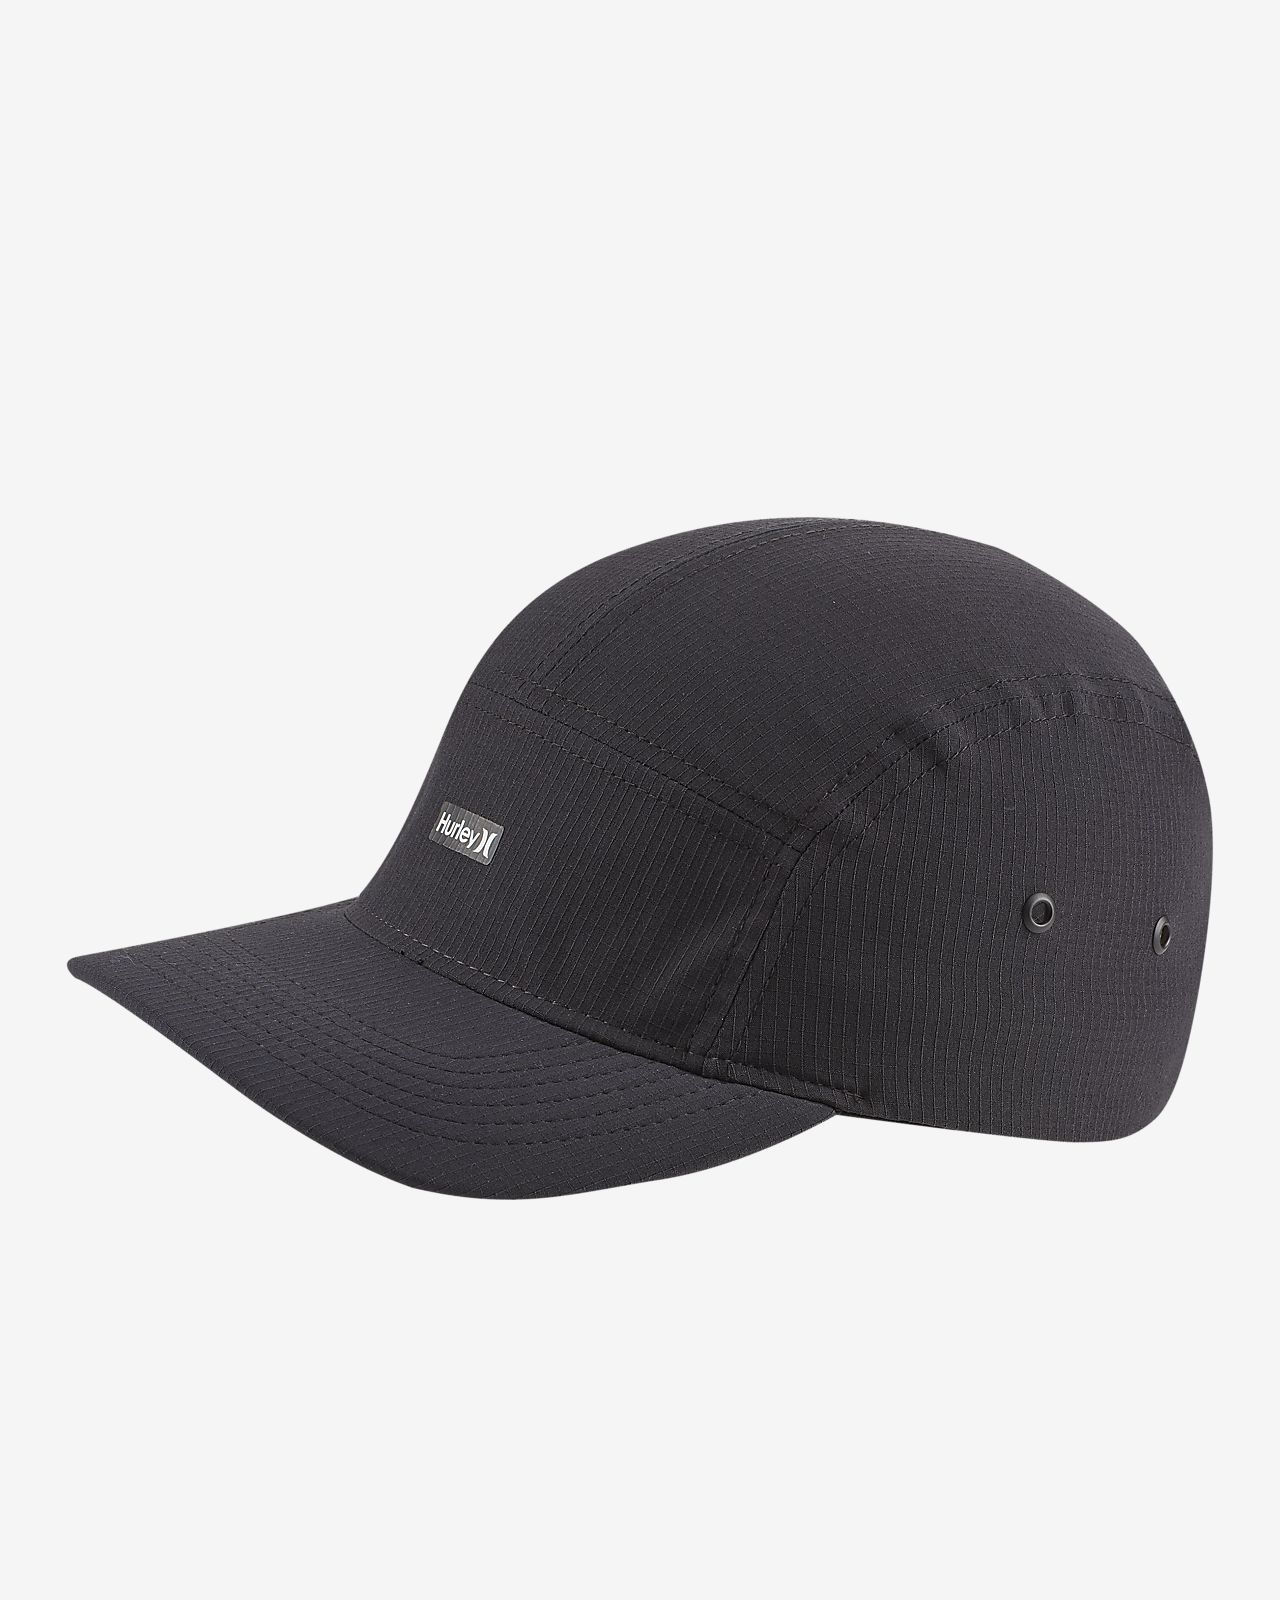 b40a37a2 Hurley One And Only Women's Adjustable Hat. Nike.com